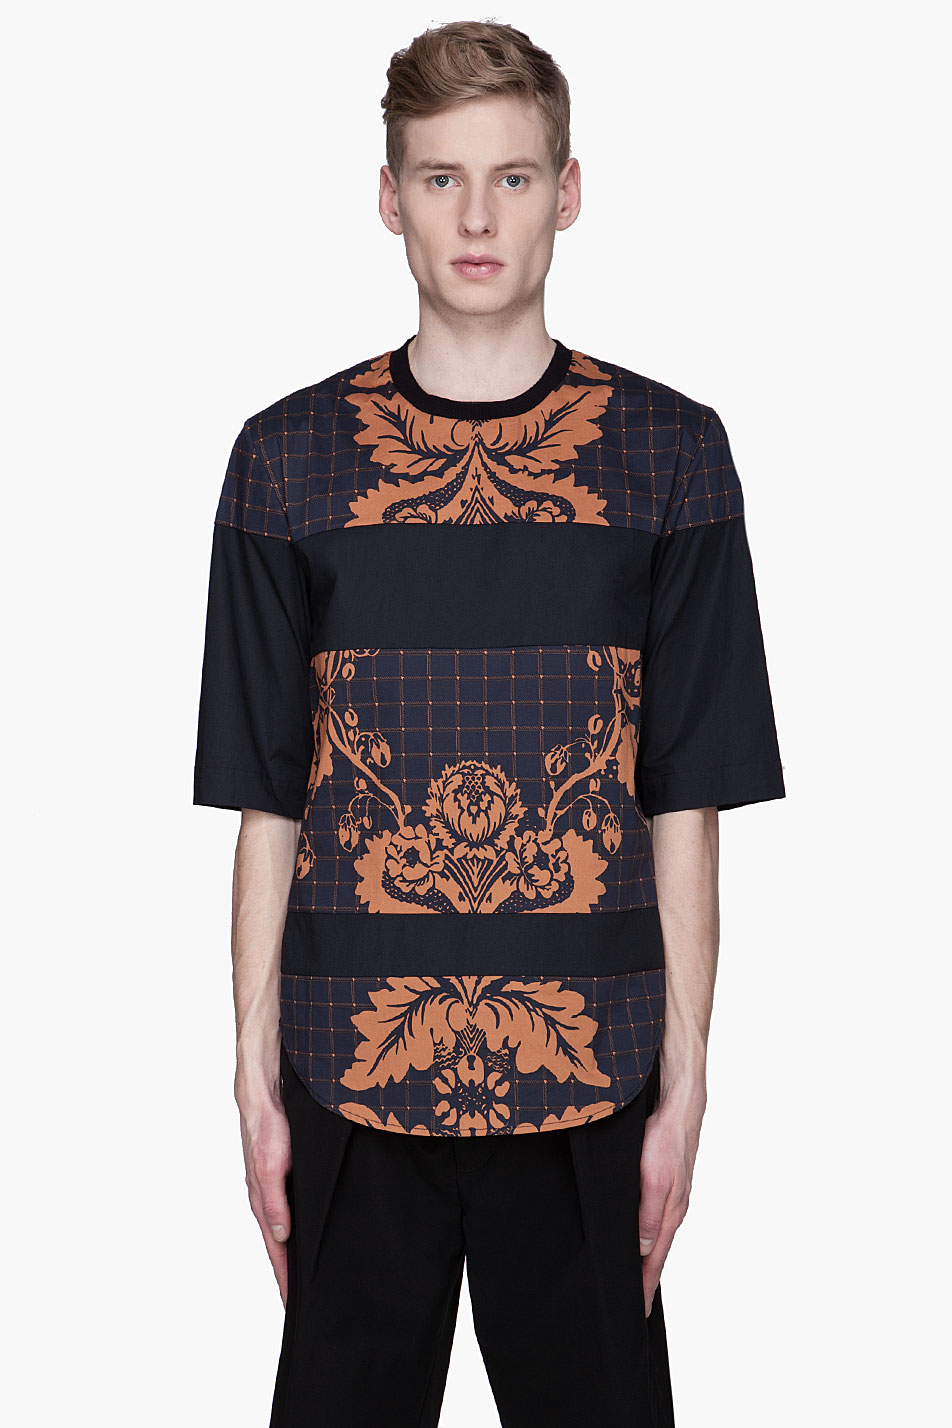 3 1 phillip lim navy floral paneled oversize t shirt in